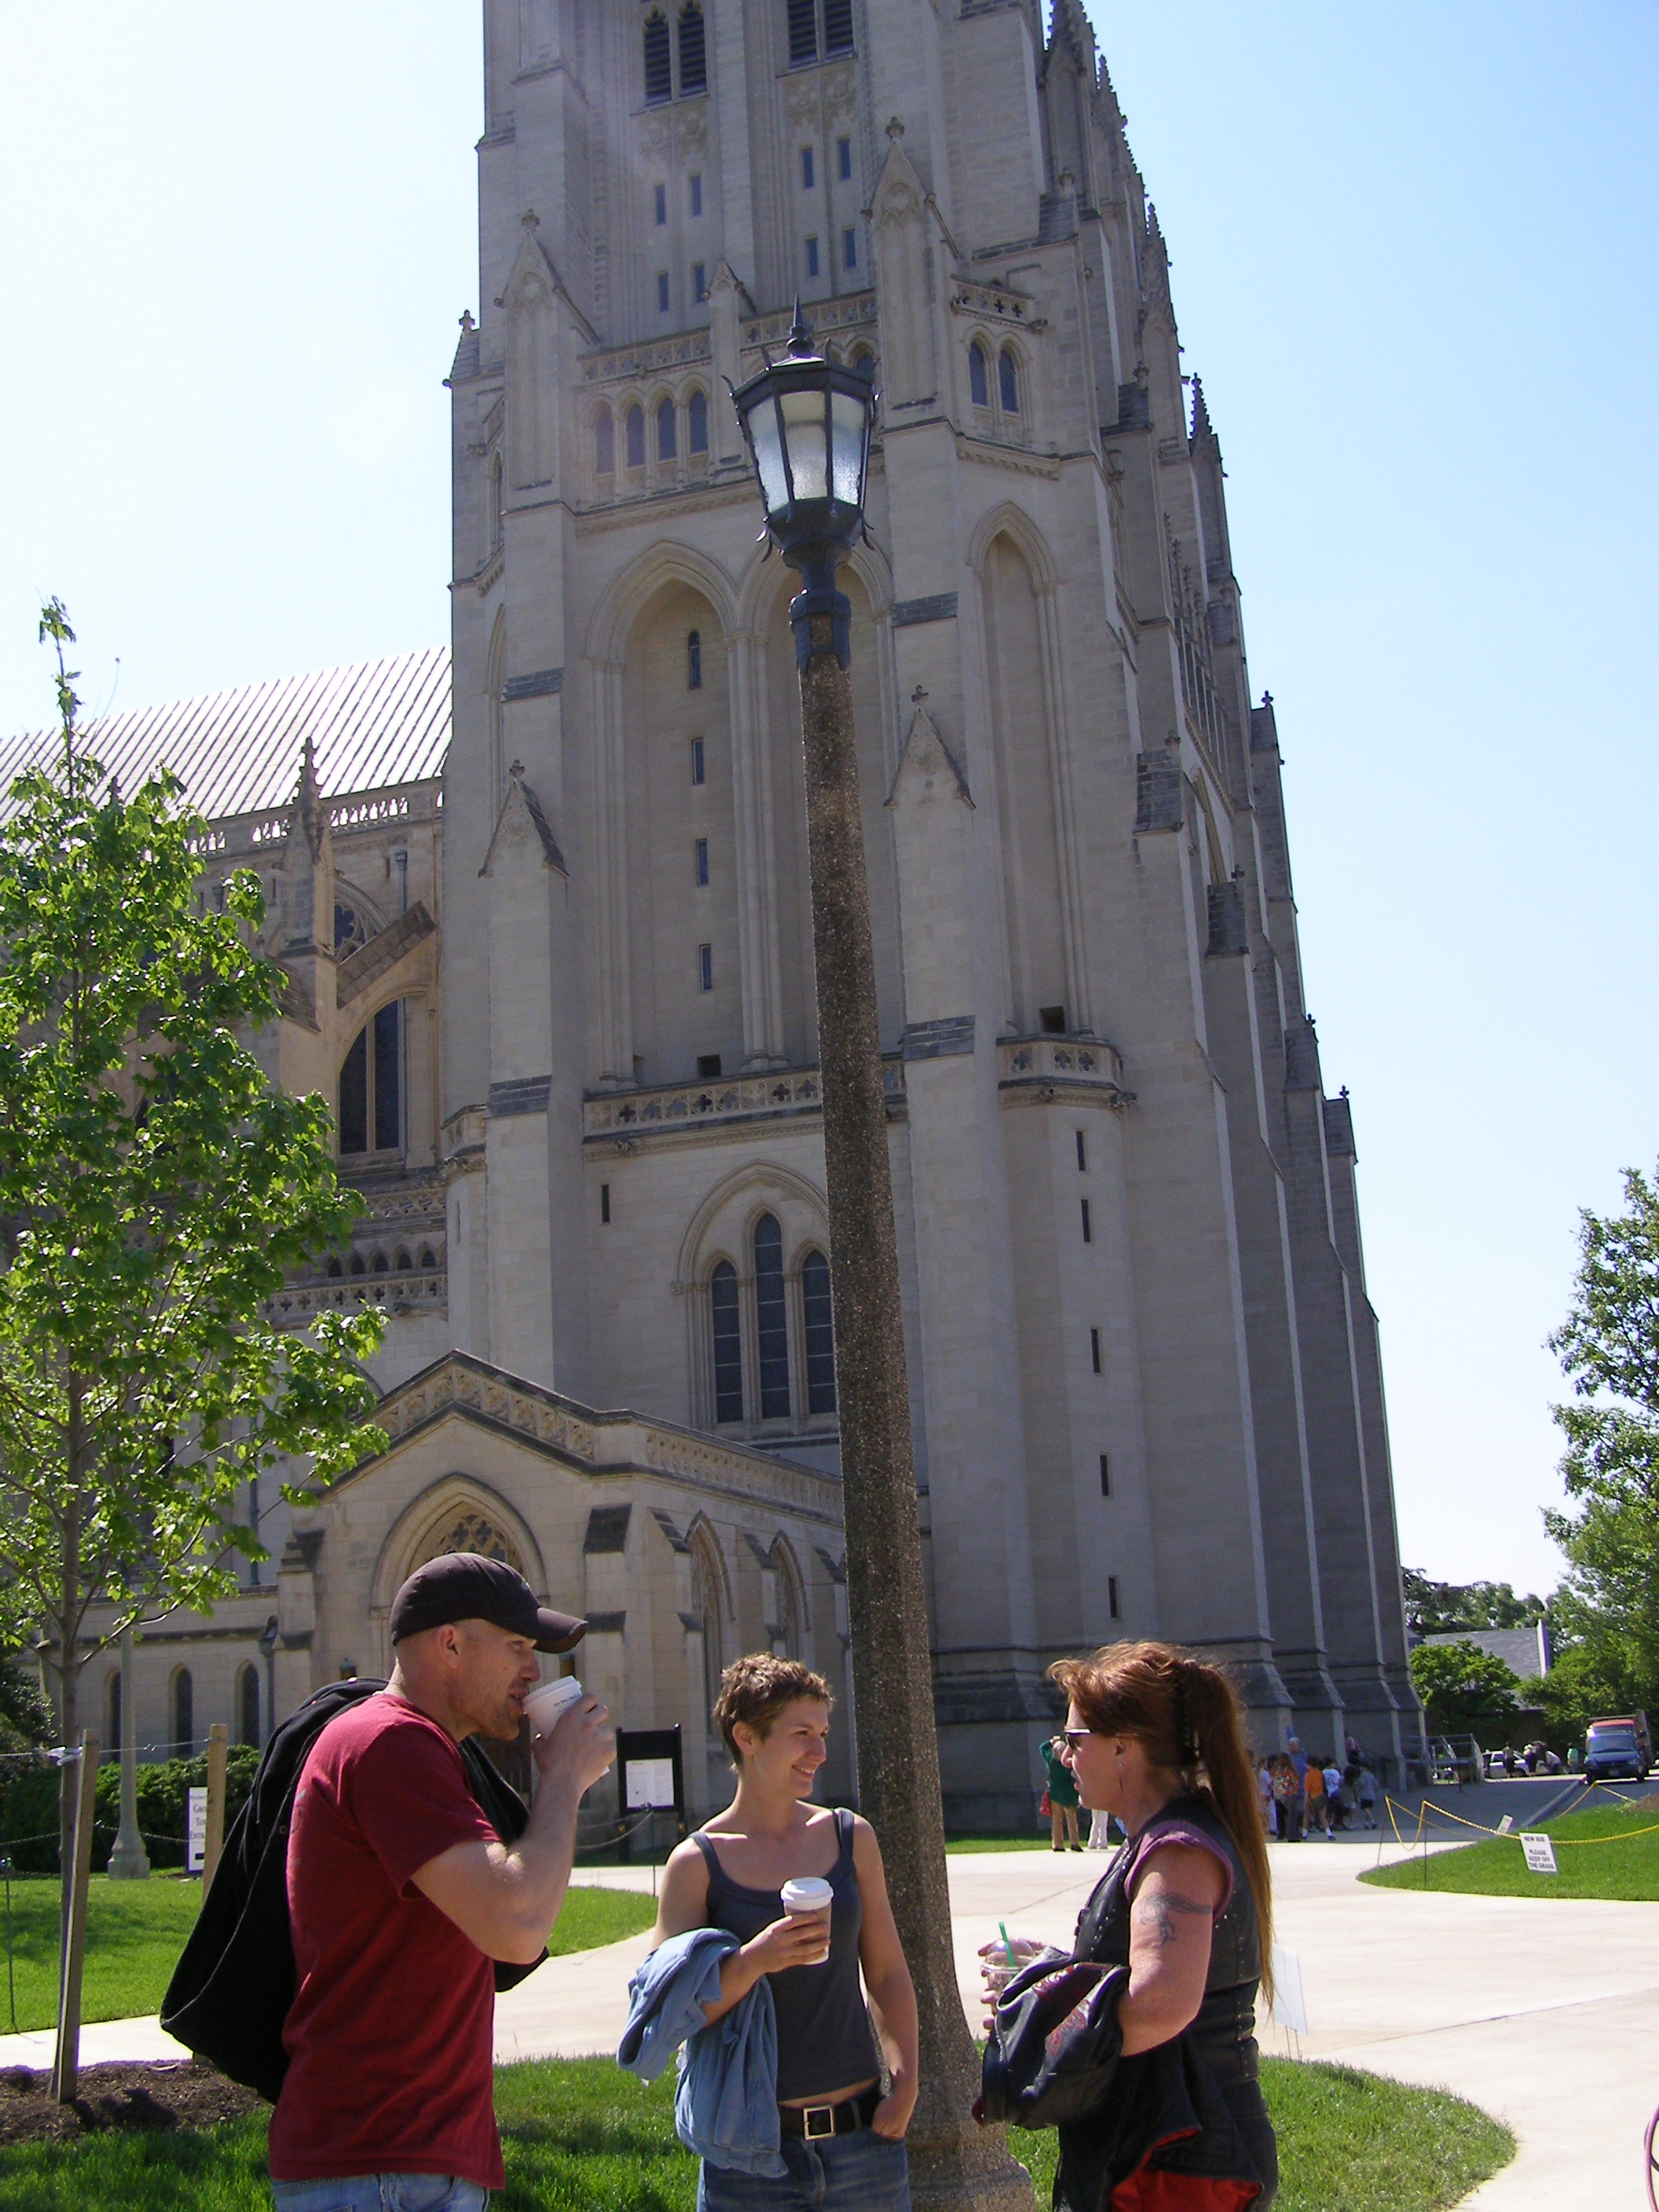 Blacksmith Days Demonstrators Jake Hill, Becky Little and Dorothy Stiegler Outside Cathedral before Tour